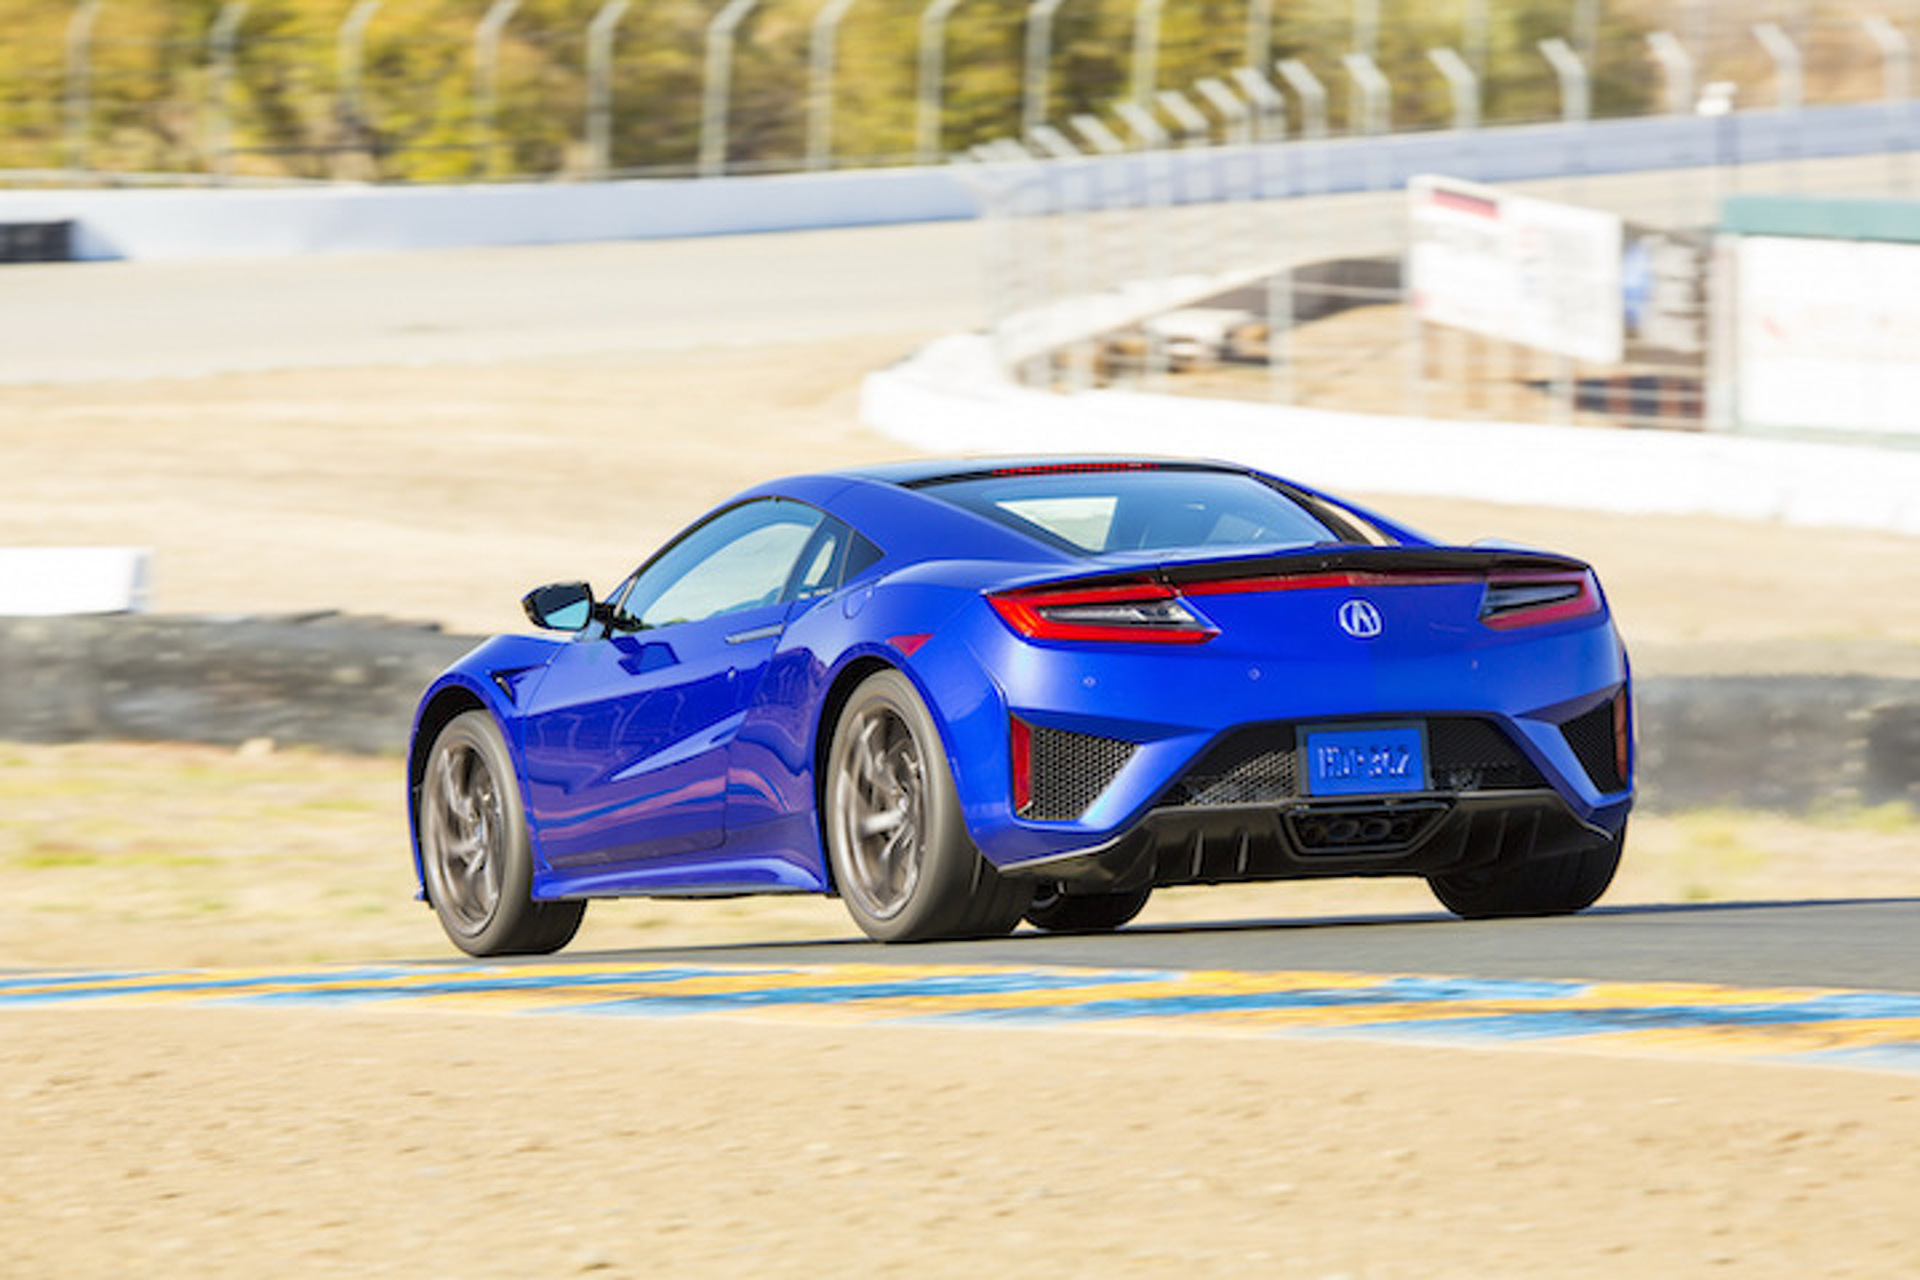 Would You Pay $156,000 For an All-New Acura NSX Supercar?